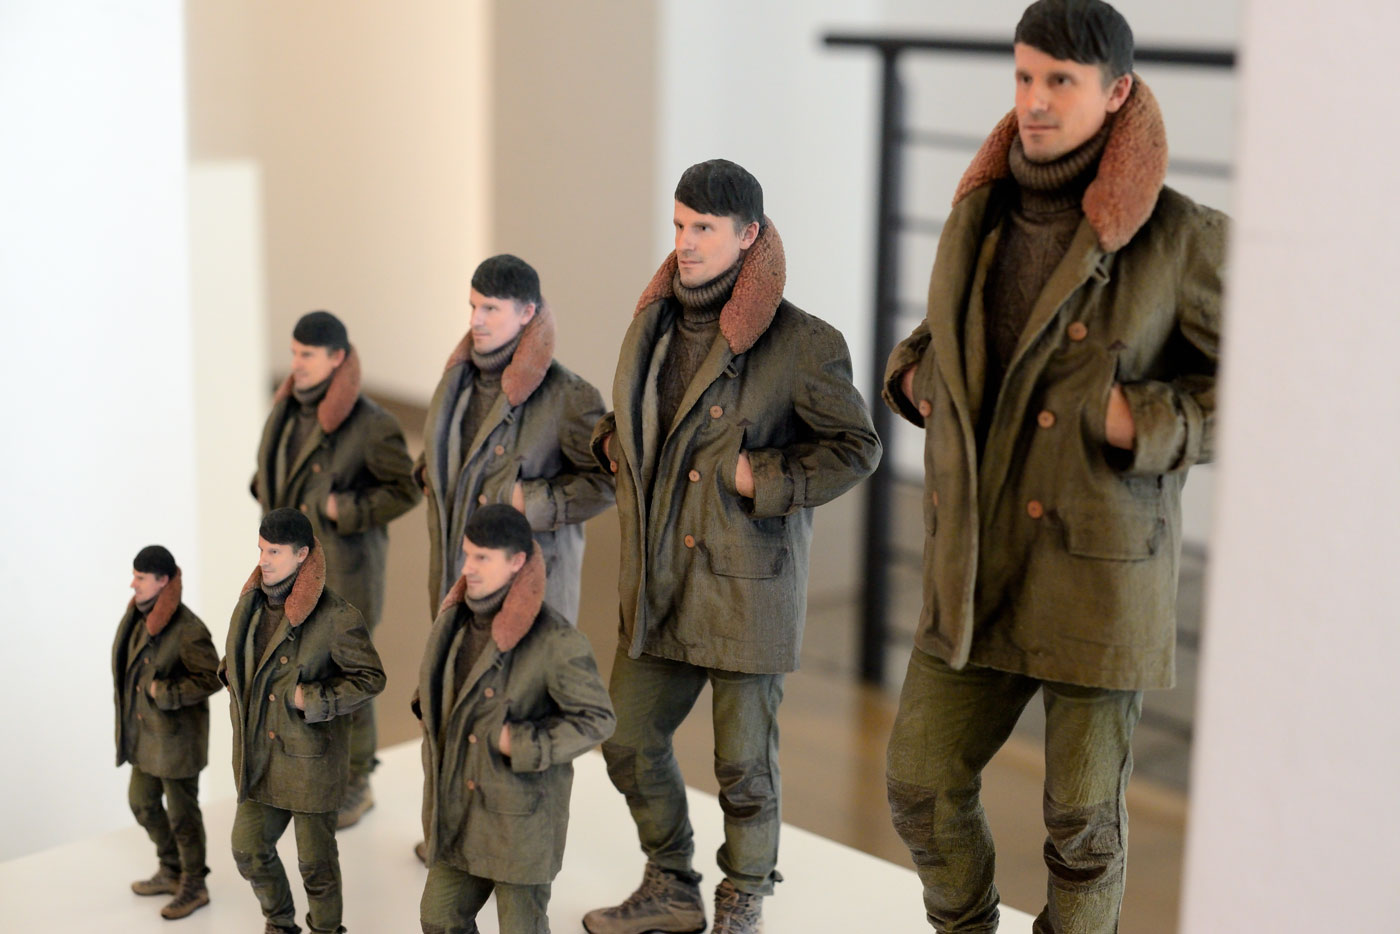 Custom-made life-like 3D Photo Figurines of Yourself by